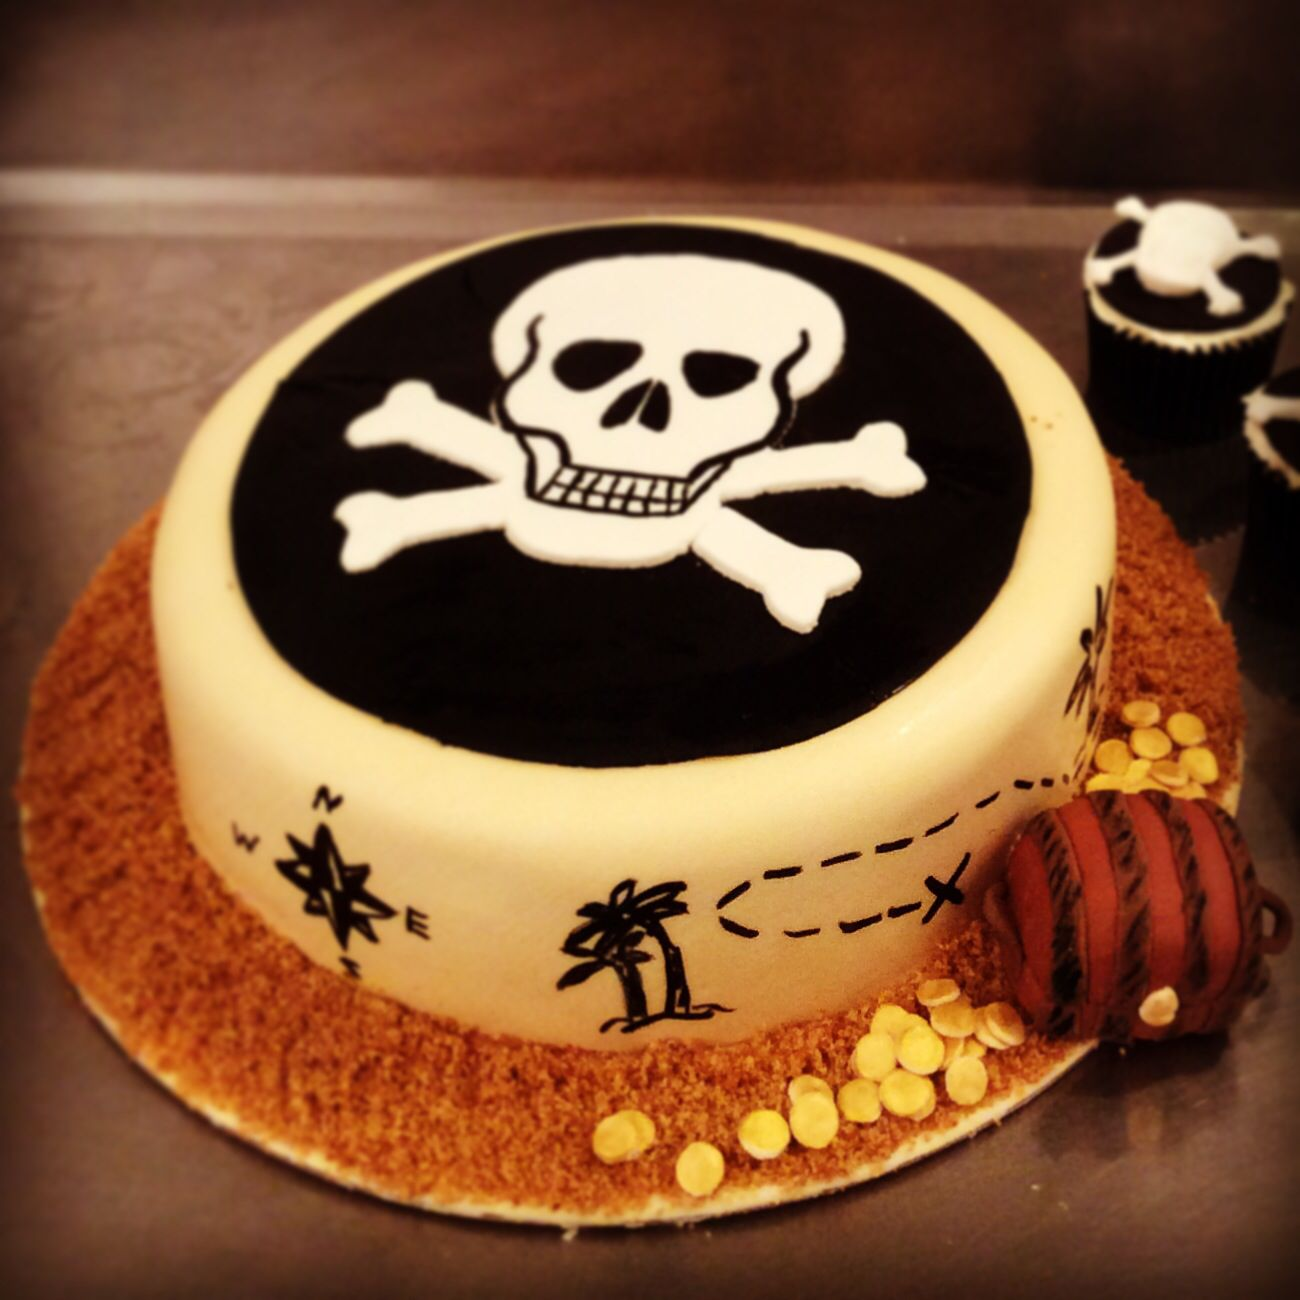 Pirate birthday cake by Synie's Paris, www.synies.com